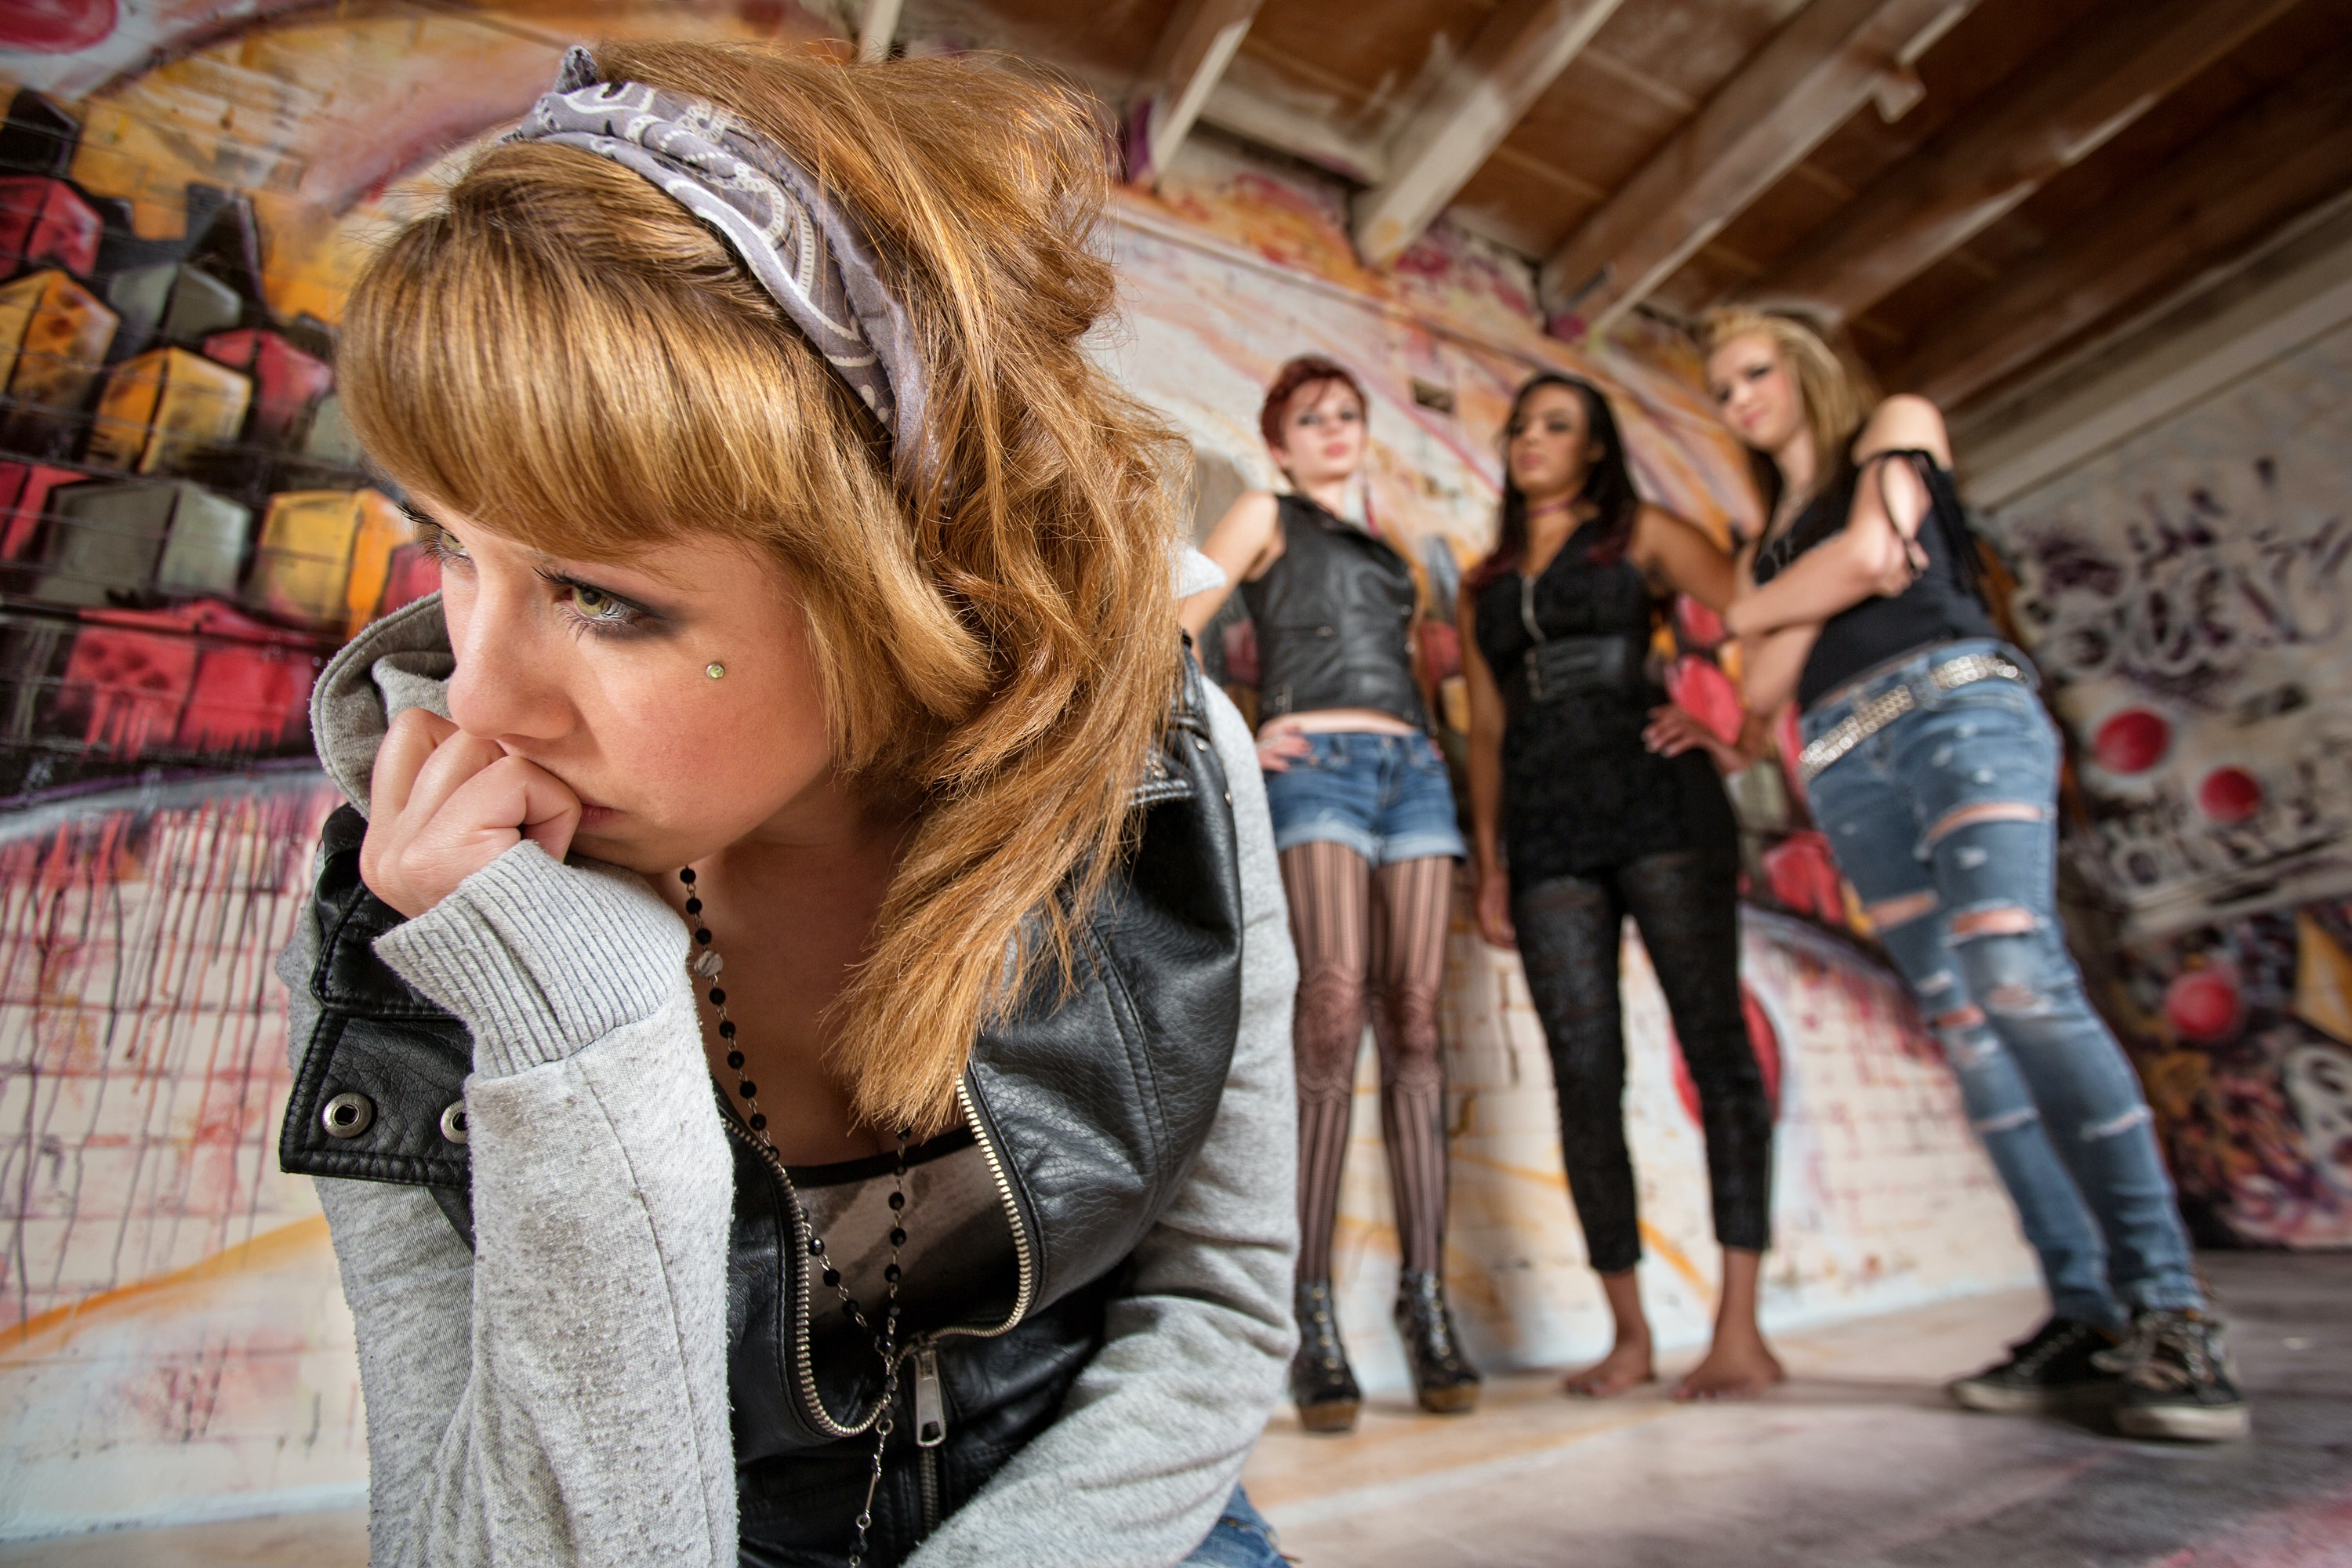 an analysis on bullying in schools Analysis of middle school student bullying experiences and student reported school climate by troy alan schimek a research paper submitted in partial fulfillment of the.